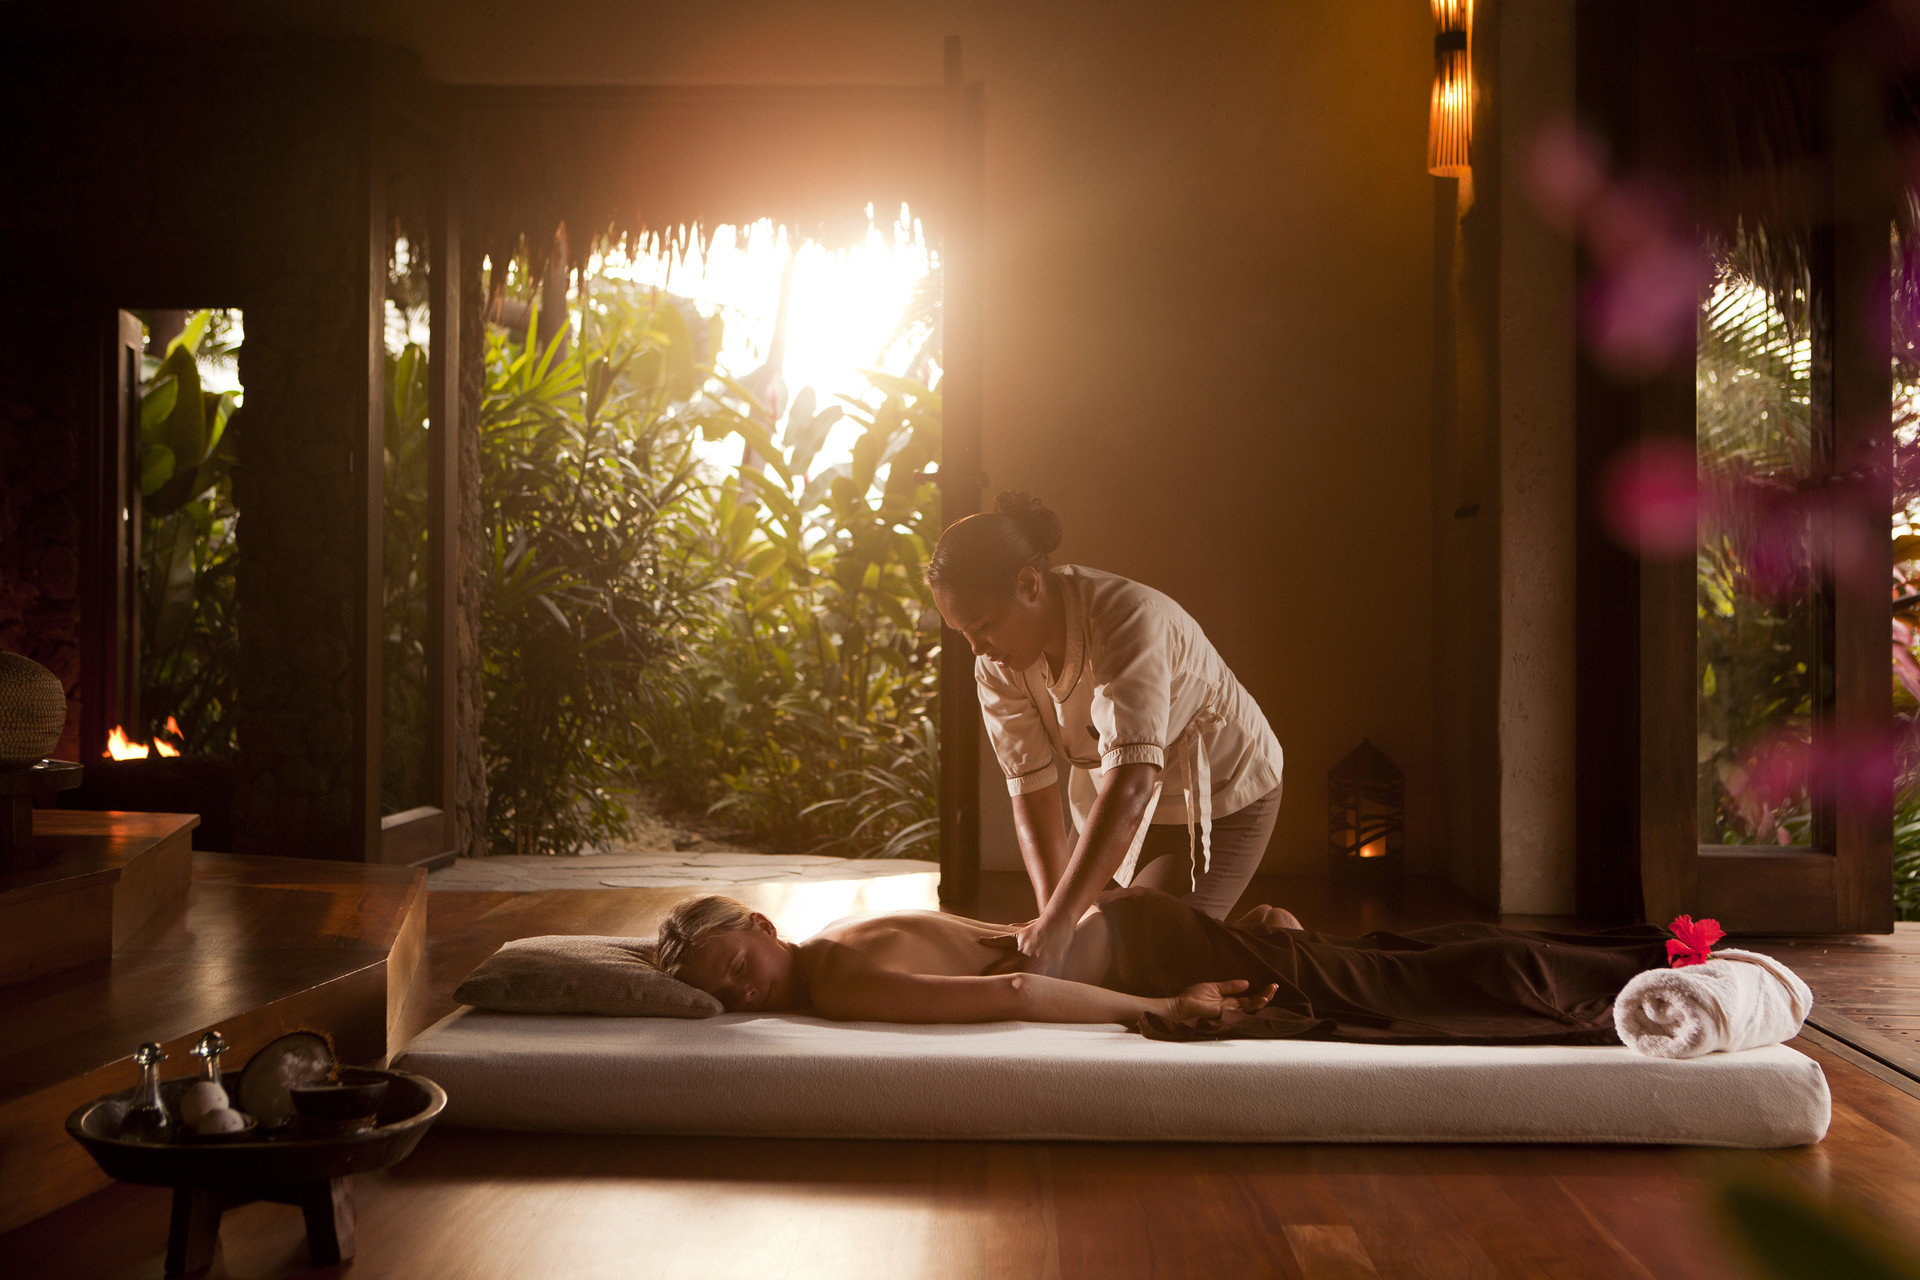 airy calm golden hour Health + Wellness isolation Luxury massage people private quaint relaxation relaxing remote serene Spa Spa Retreats sunlight Sunset Travel Tips Tropical man person interior design lighting living room